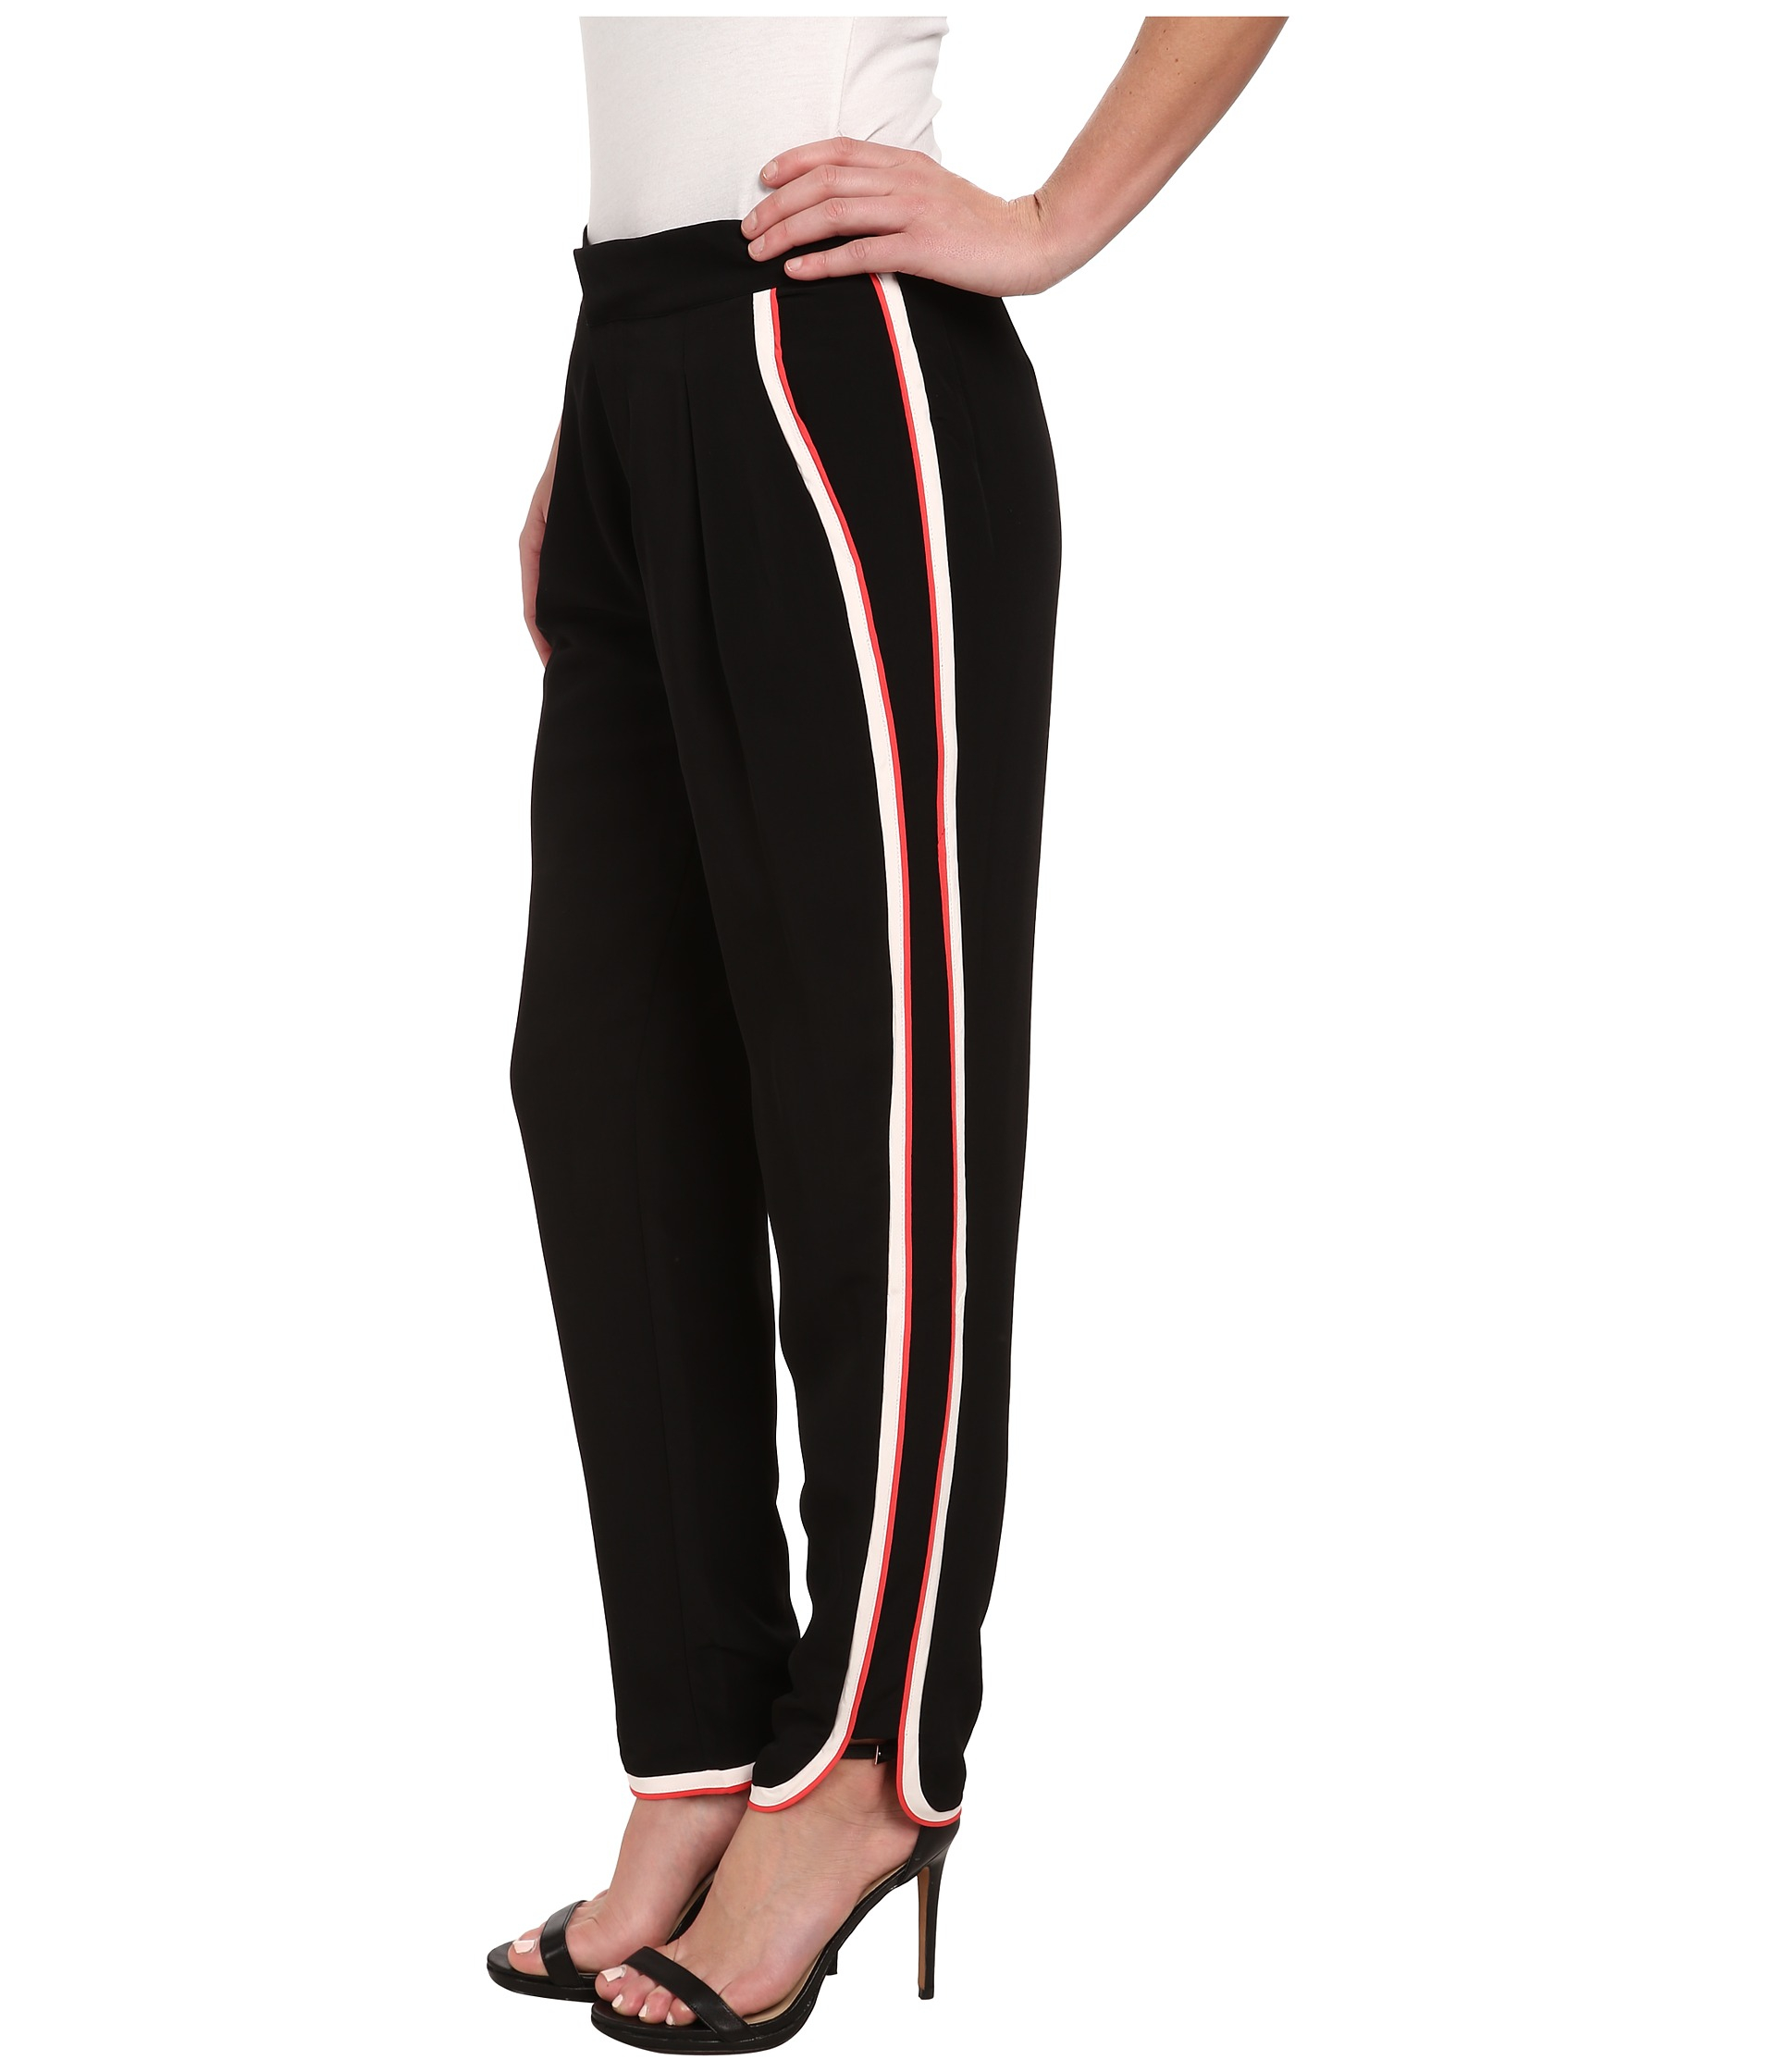 women s black pants with red pocket trim photo - 1